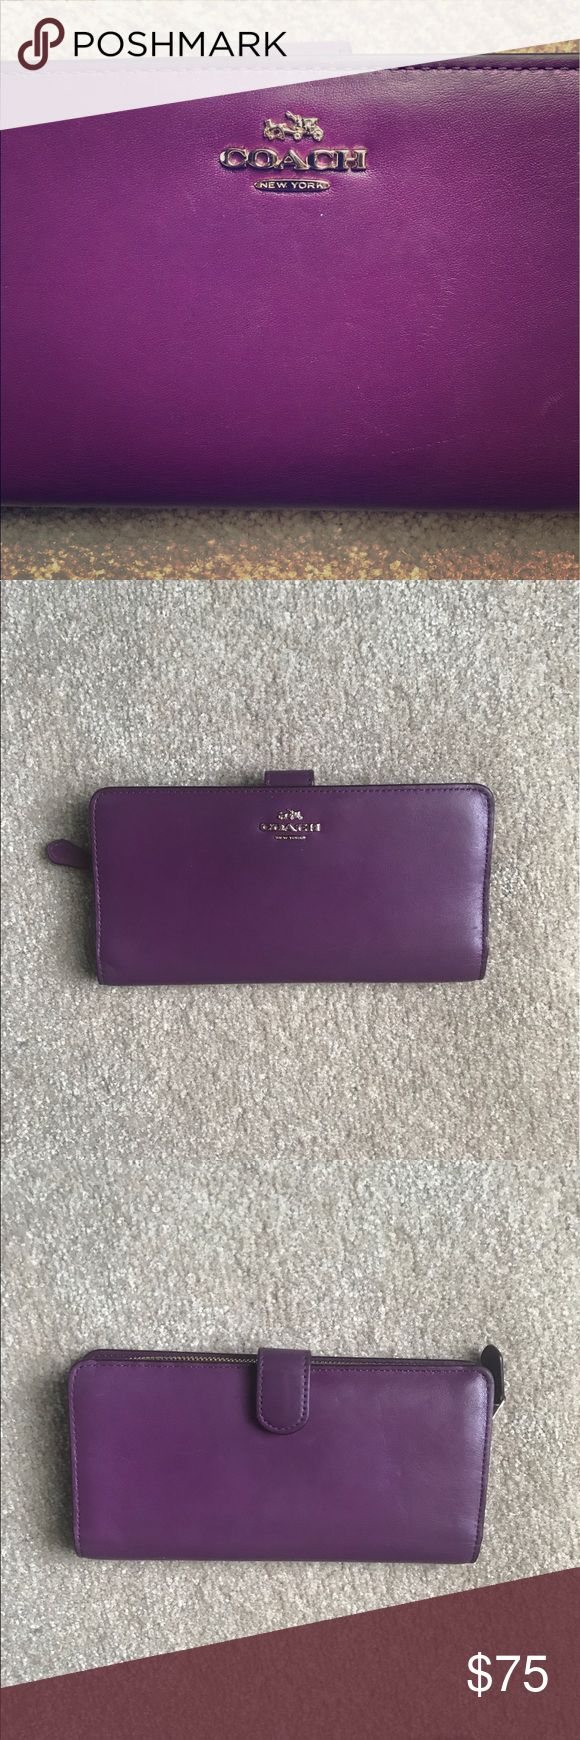 "Coach Skinny Wallet Coach Skinny Wallet in Purple. Leather. Sixteen credit card pockets. Three full-length bill compartments. ID window. Zip coin pocket. Snap closure. 7 3/4"" (L) x 4"" (H). Gently used, shows slight scuffing (see photos). Smoke free home. Coach Bags Wallets"